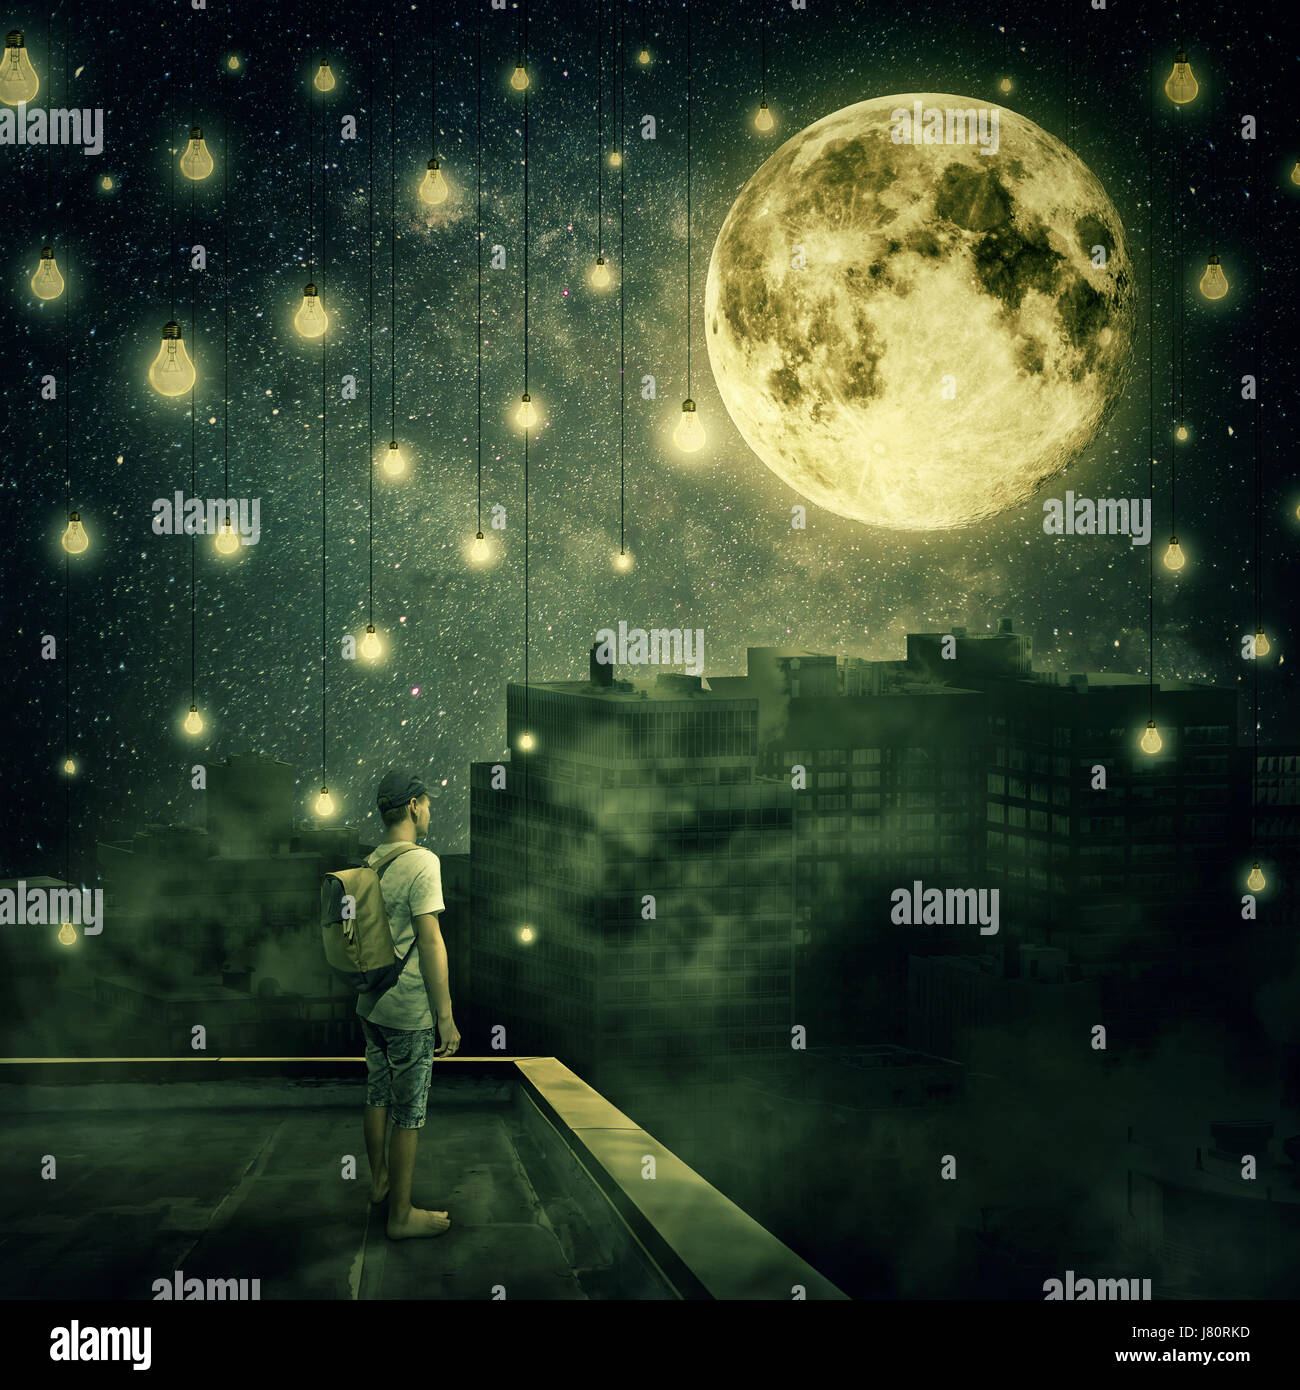 Young boy stay on the rooftop looking at the full moon. Mysterious night with suspended lightbulbs as stars over - Stock Image